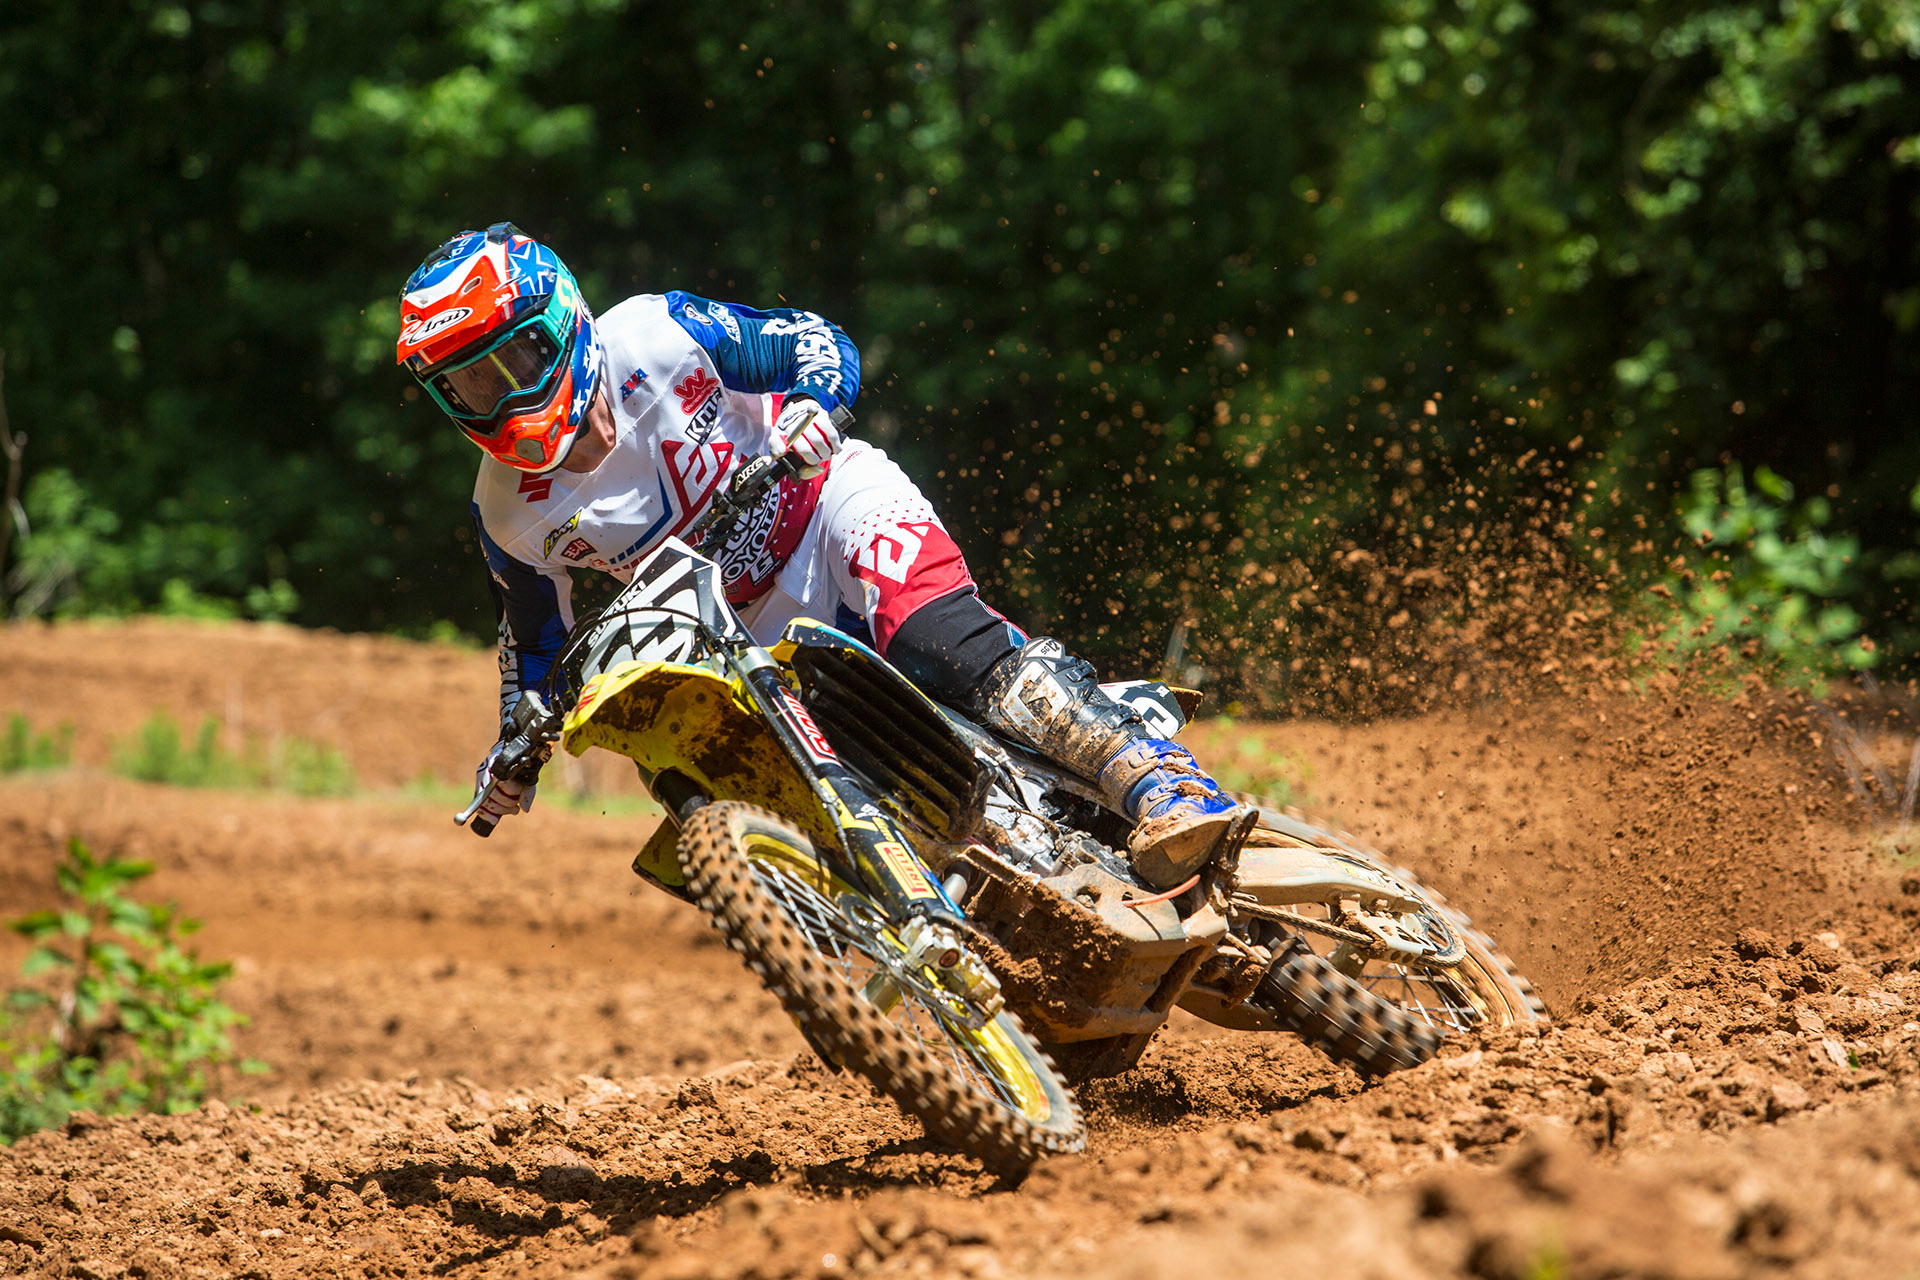 JGRMX/Yoshimura/Suzuki Factory Racing - Kyle Peters #55